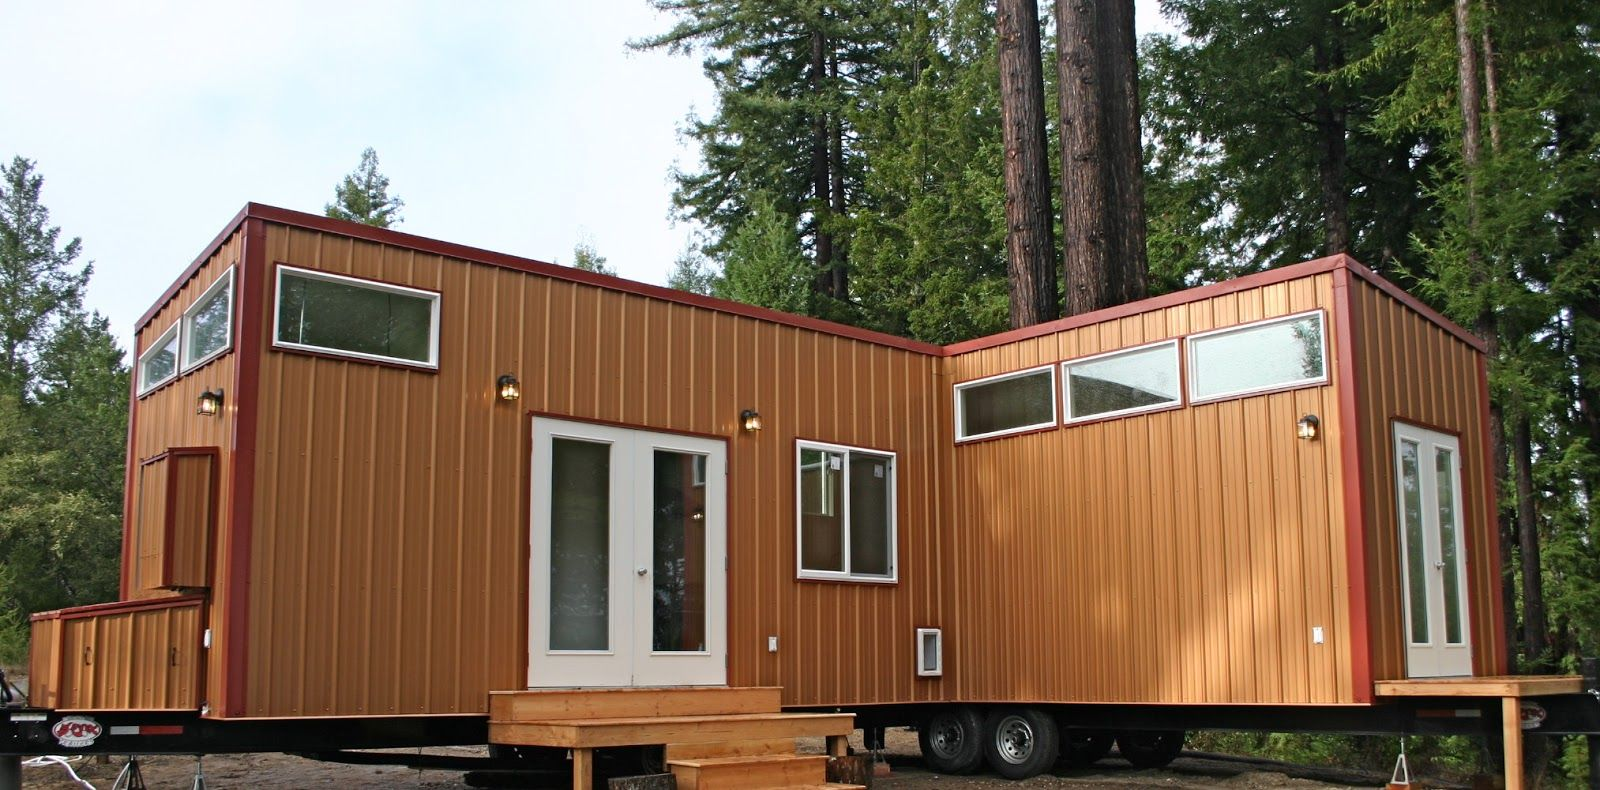 Two Tiny Houses On Wheels Permanently Joined Together To Make A